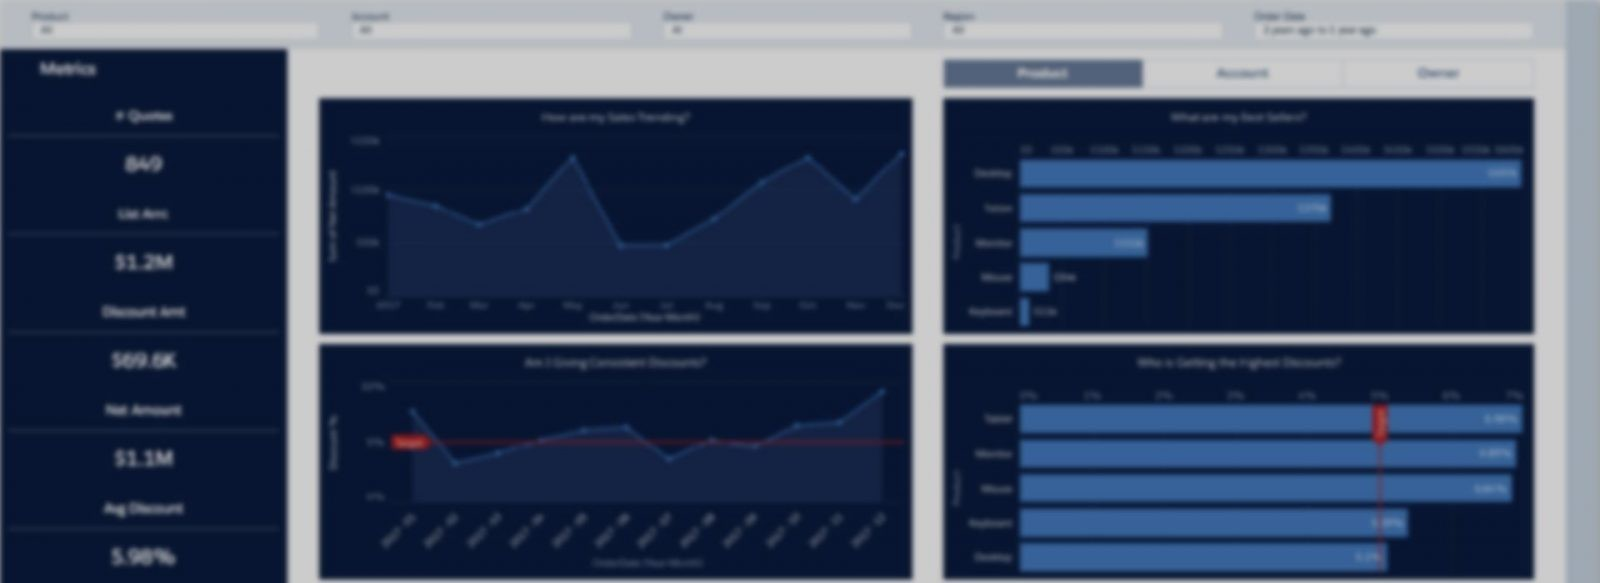 Einstein Analytics Dashboard Gallery